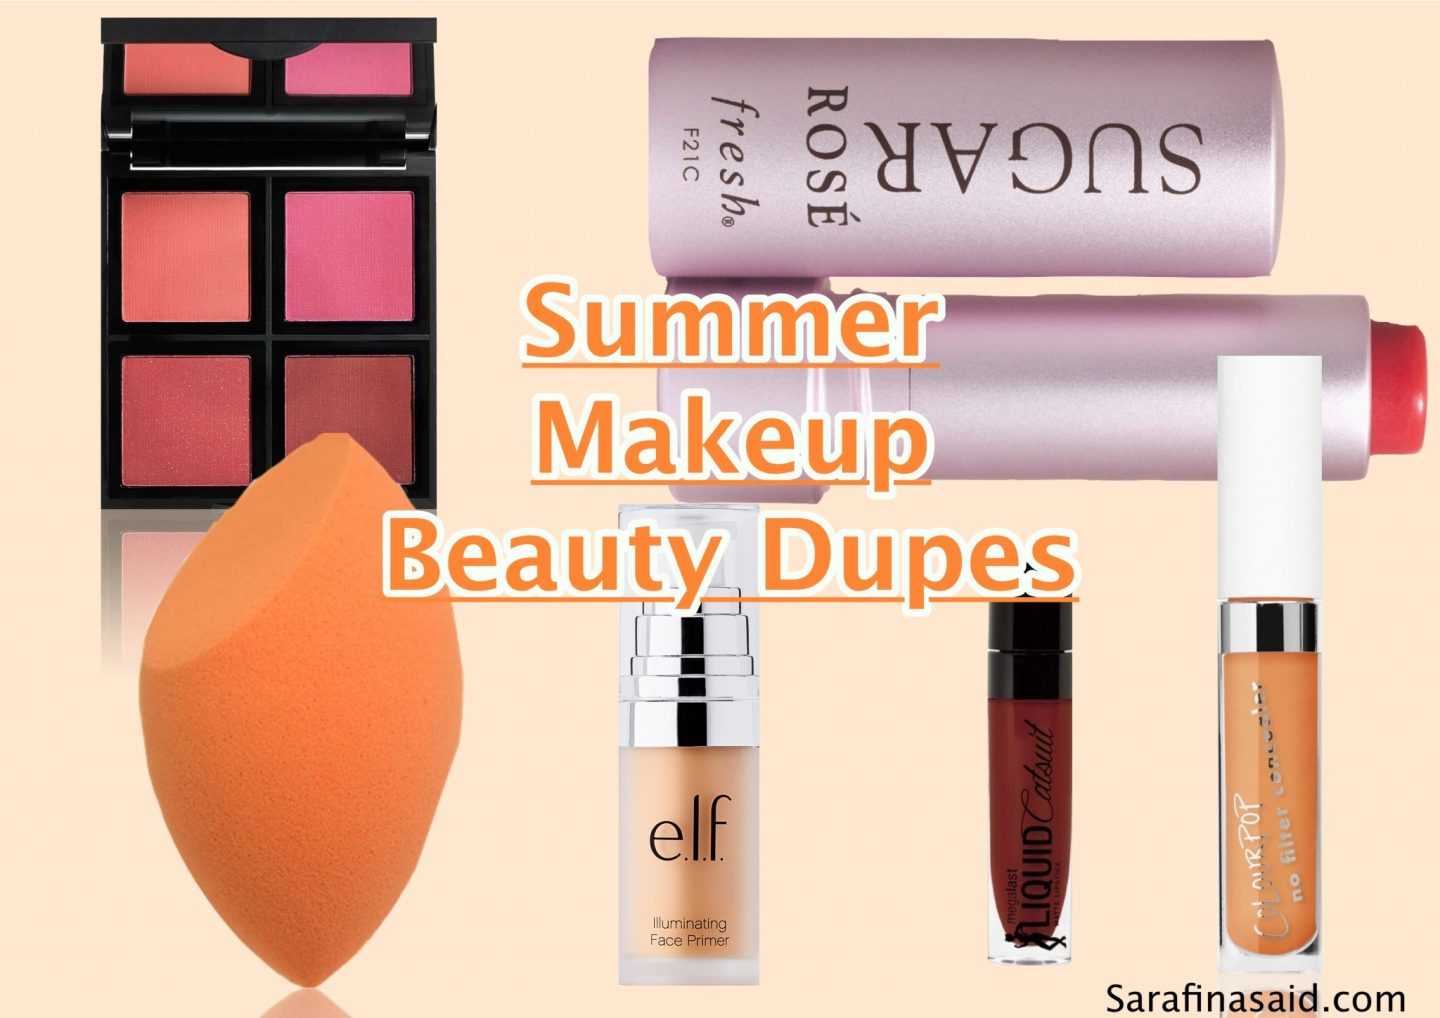 Summer Makeup Beauty Dupes